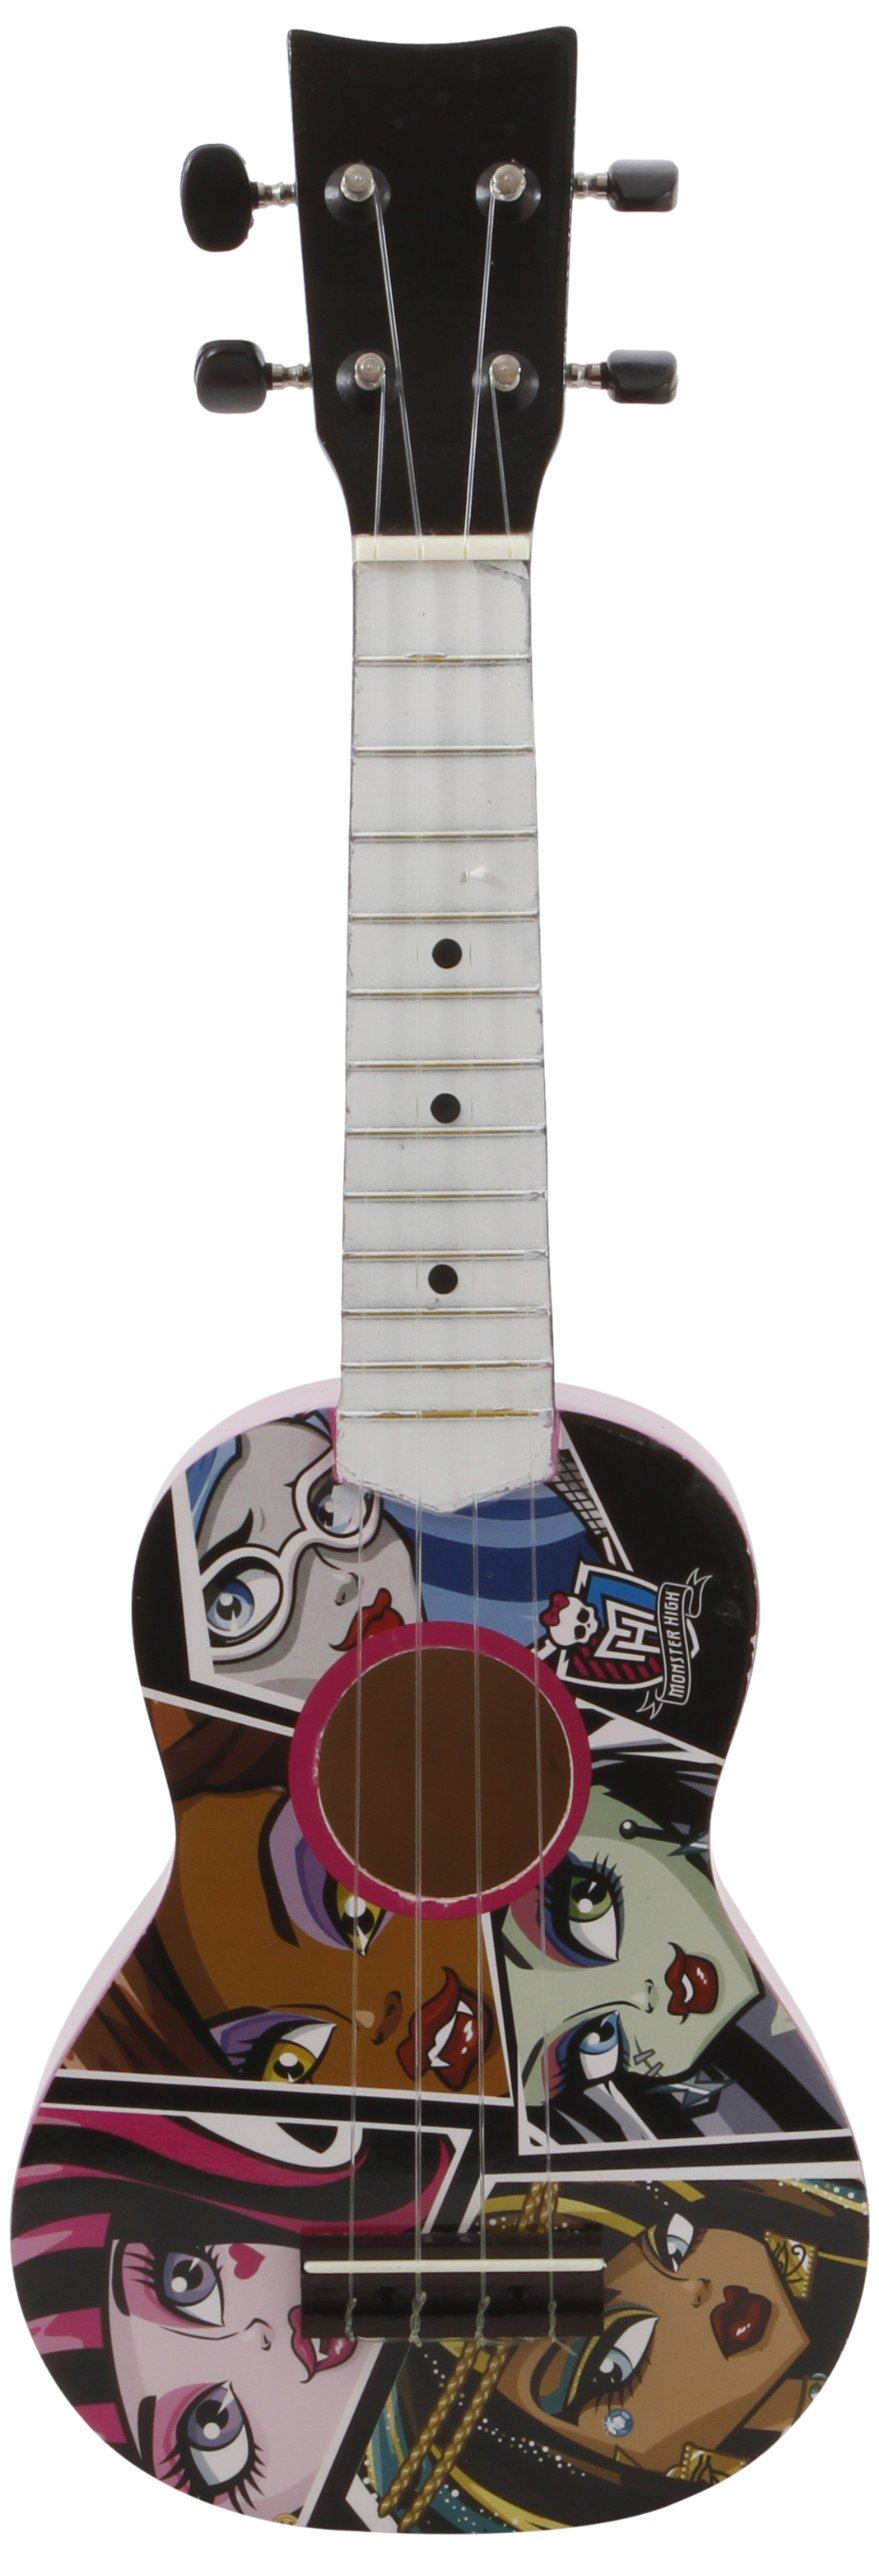 Monster High 21-Inch Acoustic Guitar - Styles May Vary (86048)